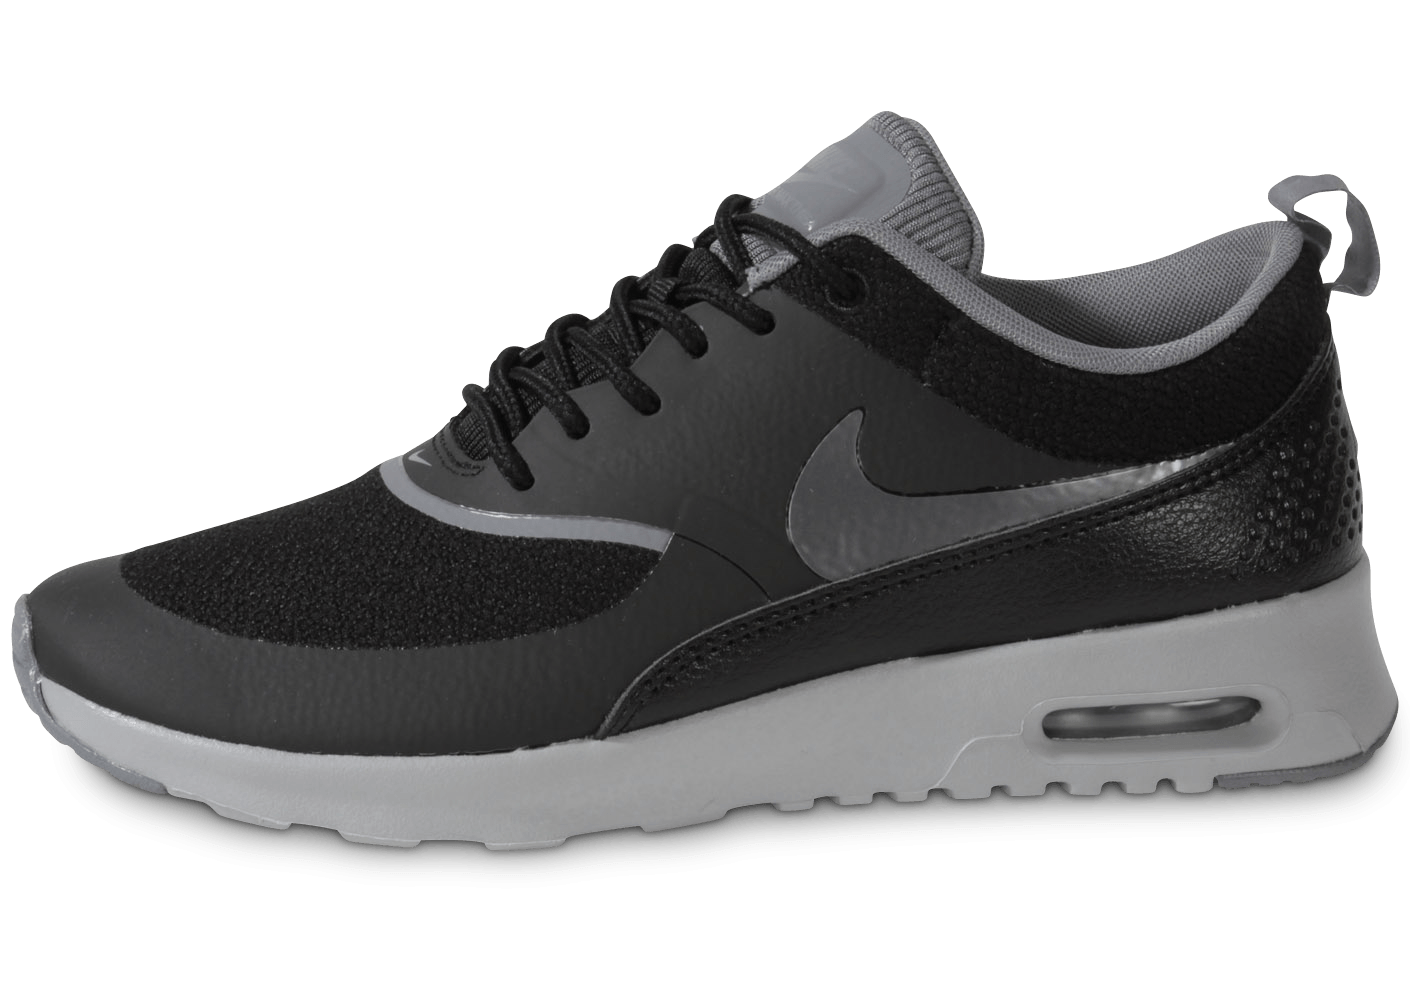 air max thea femme nike dunk ac blizzard. Black Bedroom Furniture Sets. Home Design Ideas